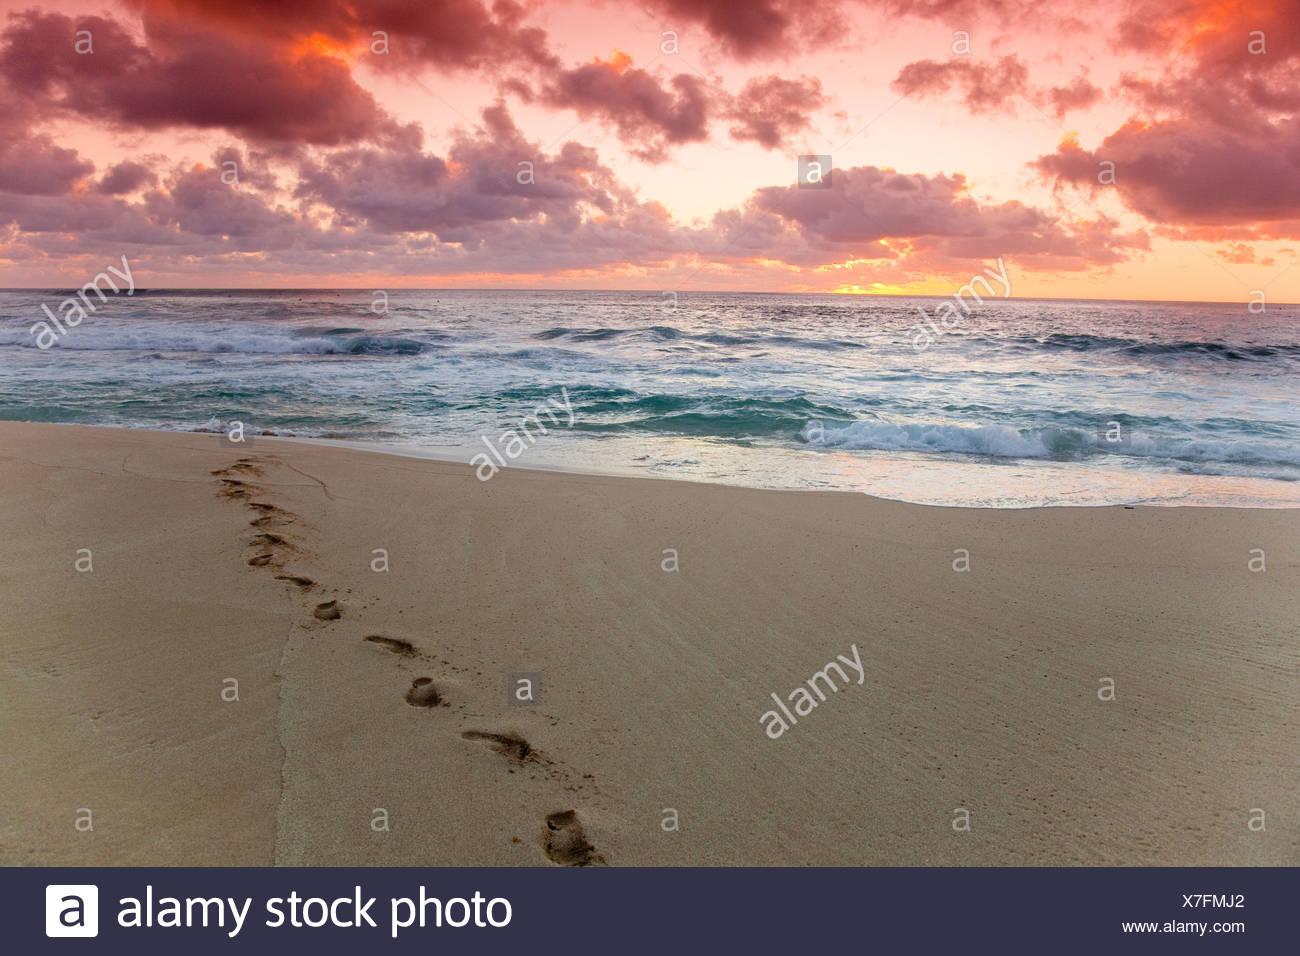 A red sky sunset over Sunset beach in Hawaii. - Stock Image